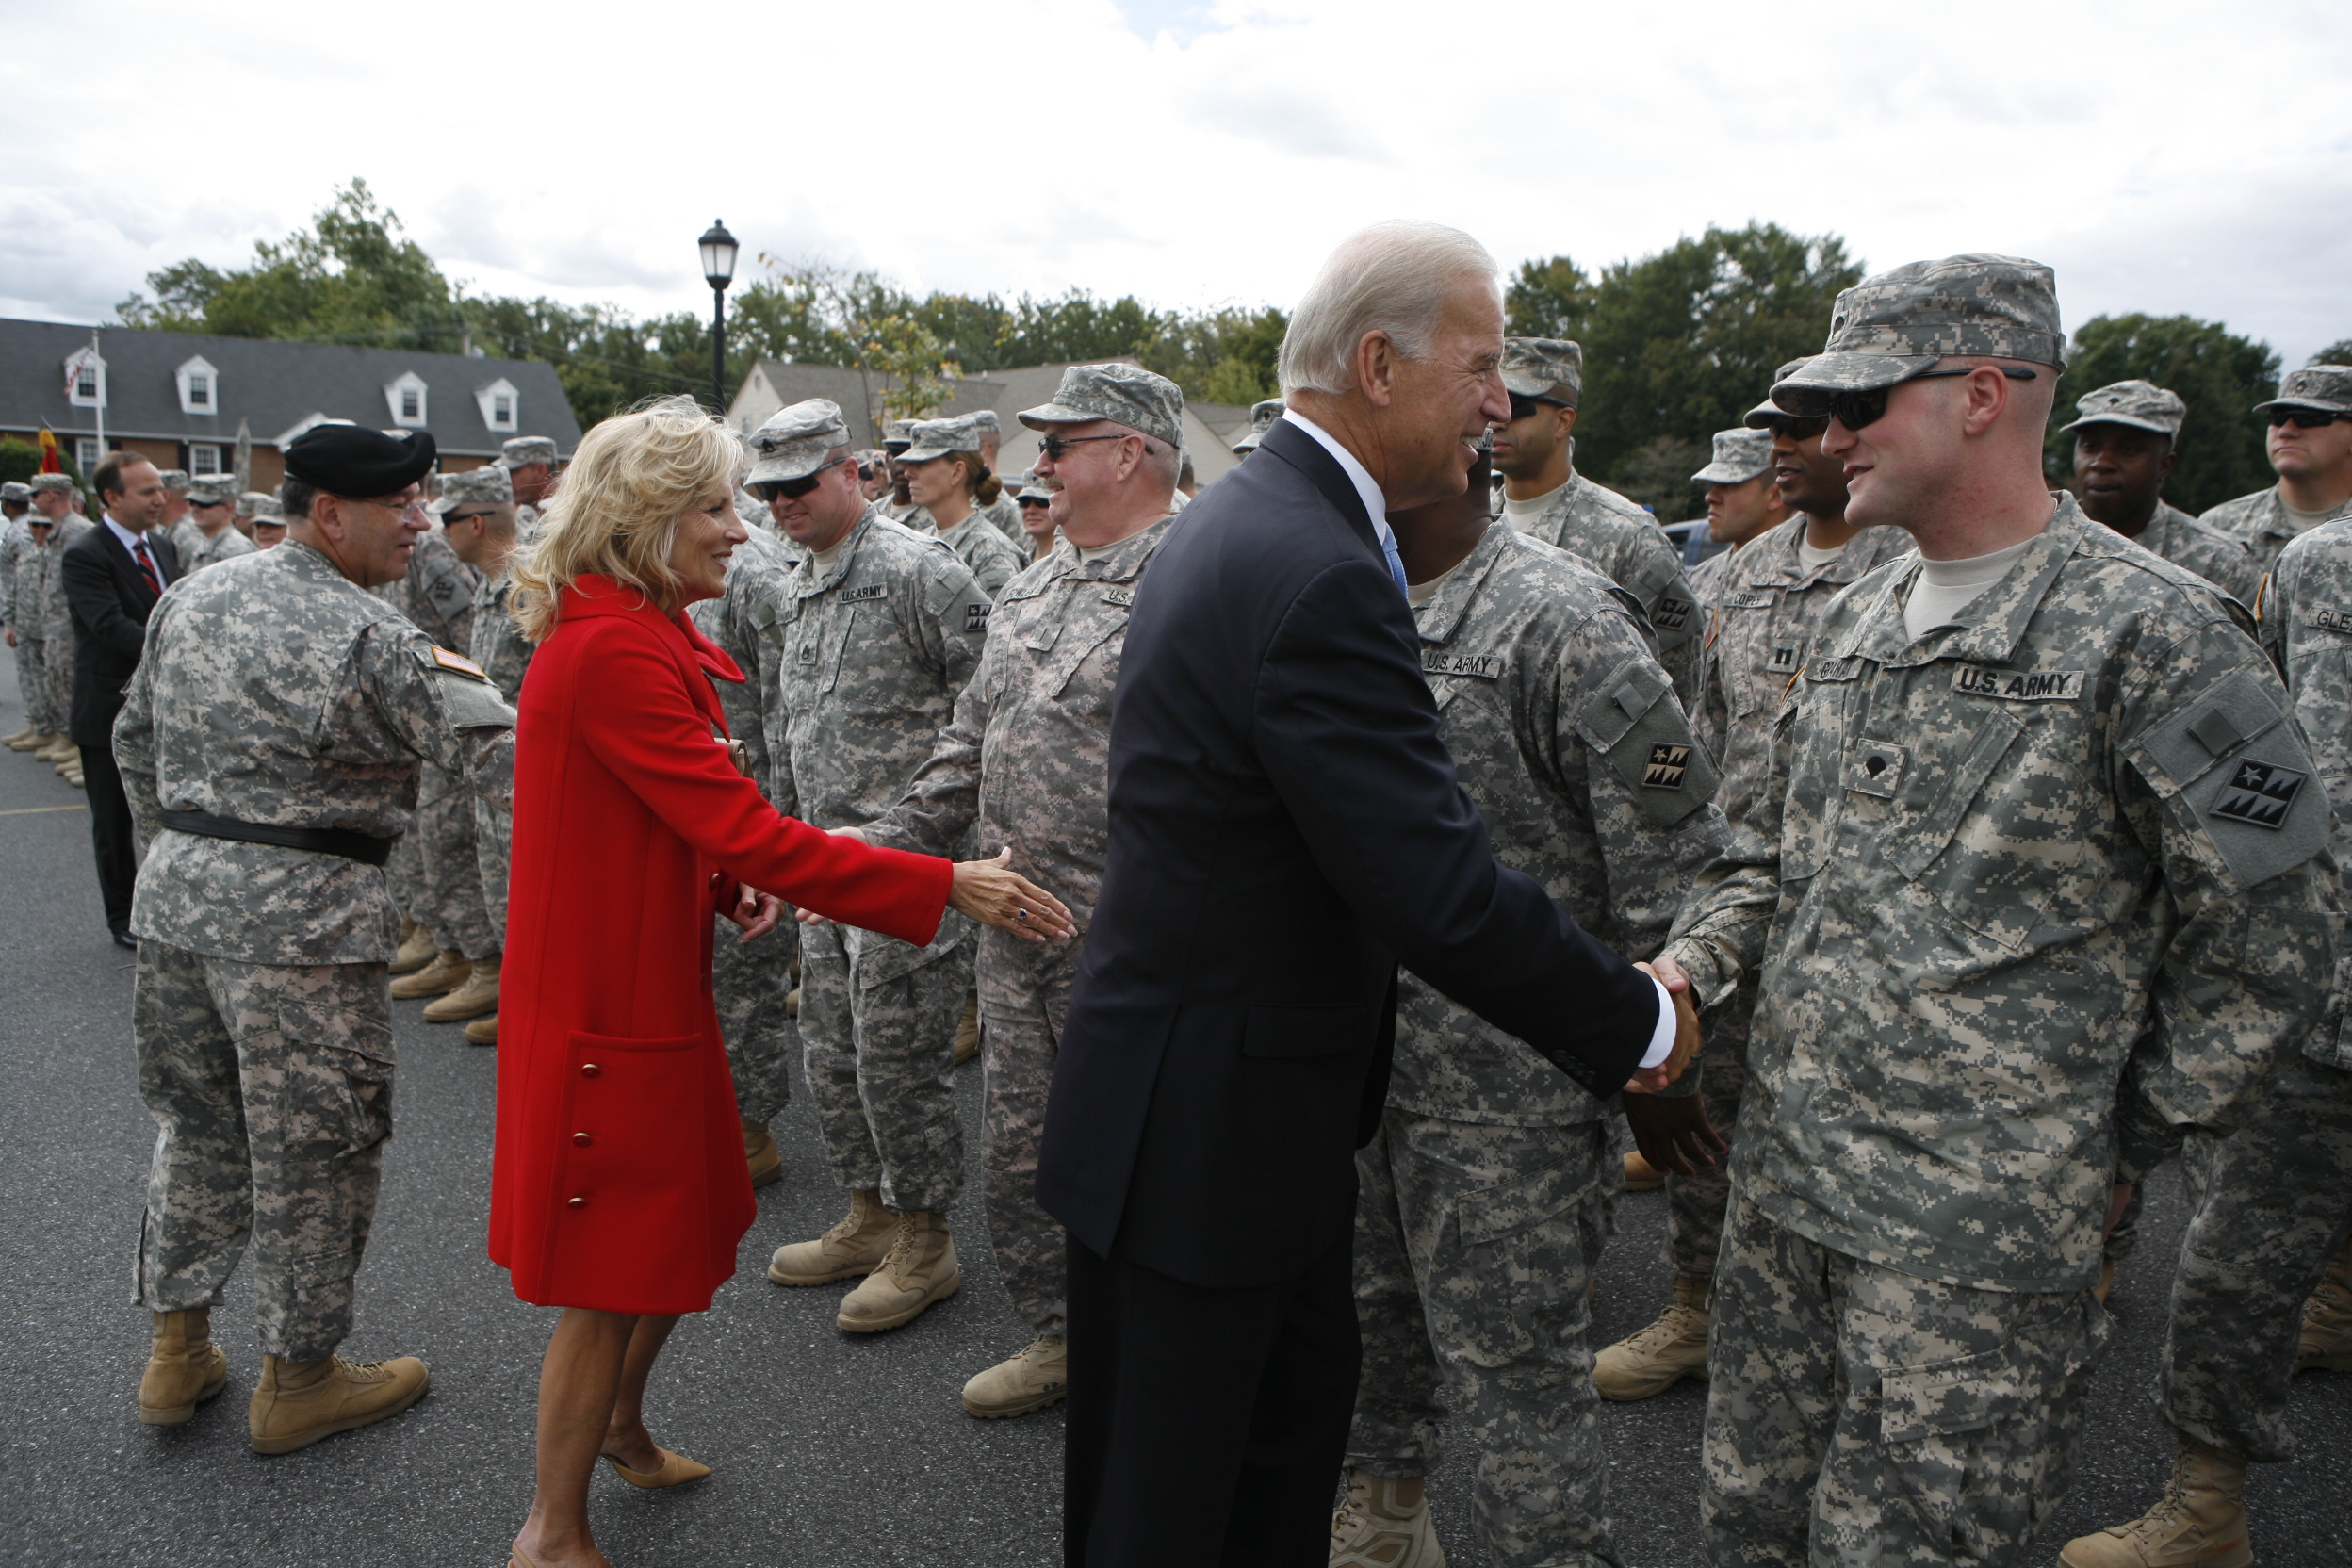 Vice President Biden and Dr. Jill Biden With Troops